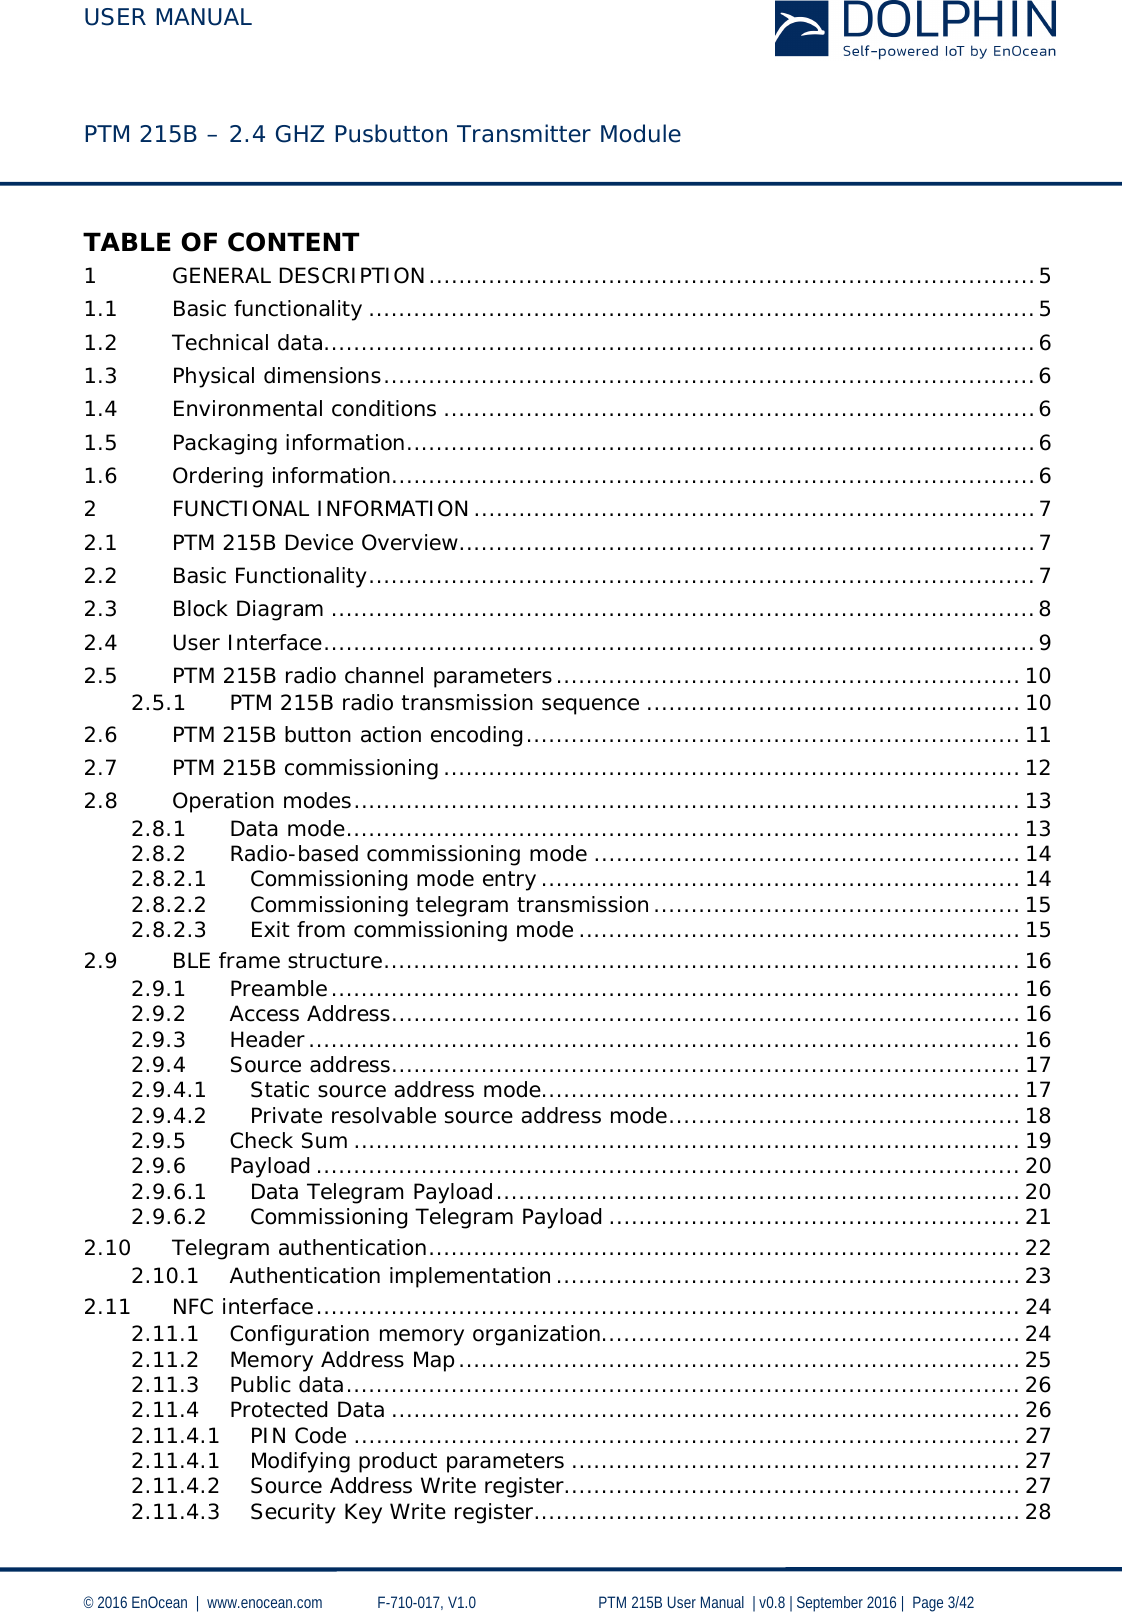 USER MANUAL    PTM 215B – 2.4 GHZ Pusbutton Transmitter Module  © 2016 EnOcean     www.enocean.com   F-710-017, V1.0        PTM 215B User Manual    v0.8   September 2016    Page 3/42  TABLE OF CONTENT 1 GENERAL DESCRIPTION ................................................................................. 5 1.1 Basic functionality ......................................................................................... 5 1.2 Technical data ............................................................................................... 6 1.3 Physical dimensions ....................................................................................... 6 1.4 Environmental conditions ............................................................................... 6 1.5 Packaging information .................................................................................... 6 1.6 Ordering information...................................................................................... 6 2 FUNCTIONAL INFORMATION ........................................................................... 7 2.1 PTM 215B Device Overview ............................................................................. 7 2.2 Basic Functionality ......................................................................................... 7 2.3 Block Diagram .............................................................................................. 8 2.4 User Interface ............................................................................................... 9 2.5 PTM 215B radio channel parameters .............................................................. 10 2.5.1 PTM 215B radio transmission sequence .................................................. 10 2.6 PTM 215B button action encoding .................................................................. 11 2.7 PTM 215B commissioning ............................................................................. 12 2.8 Operation modes ..............